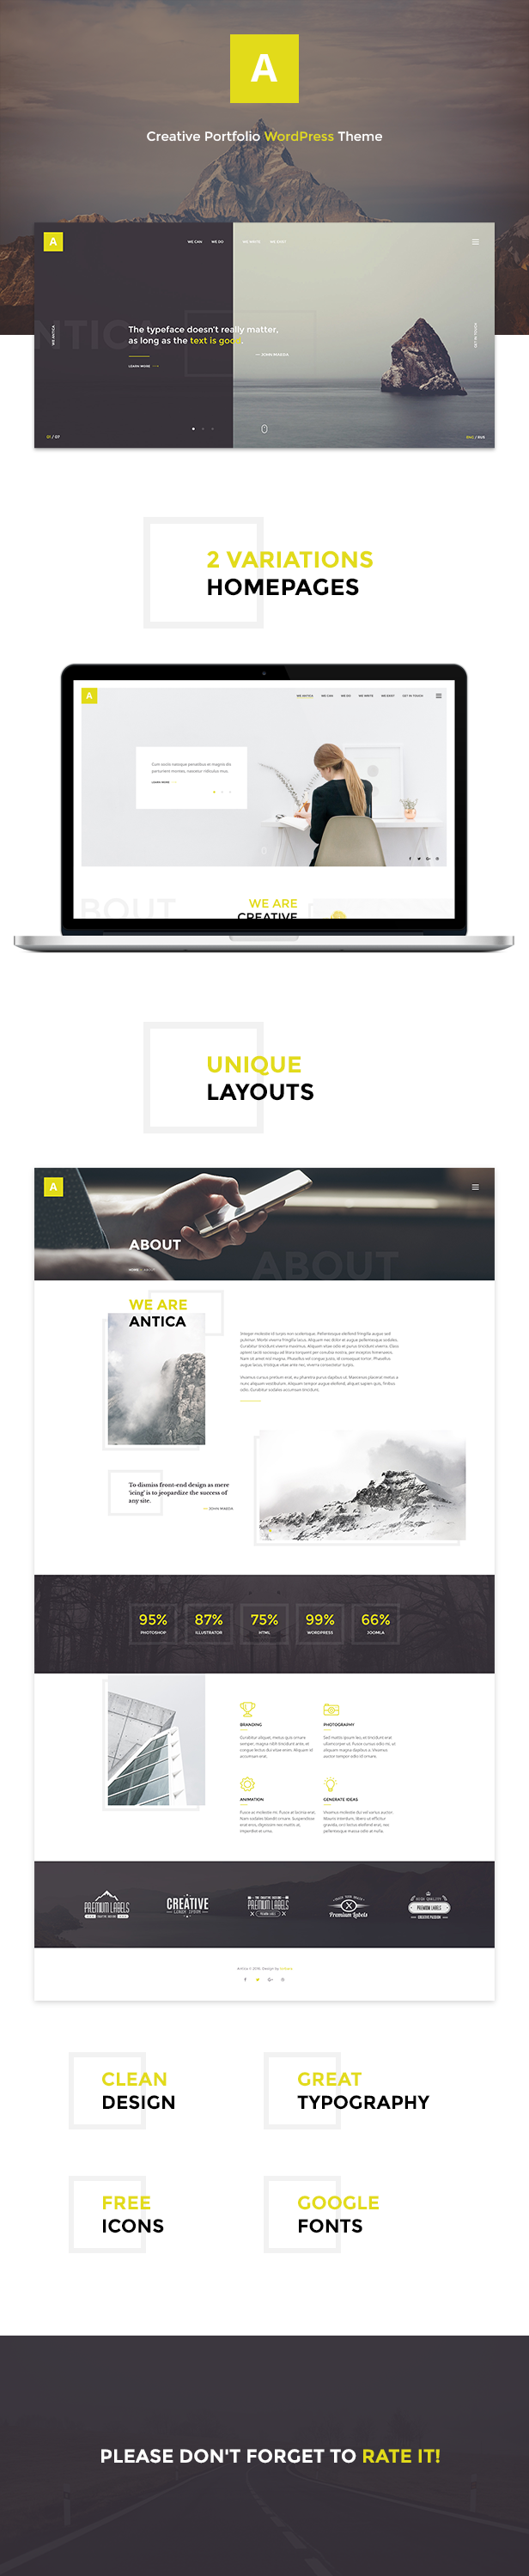 Antica — Multipurpose Business Agency/Personal Portfolio WordPress Theme - 7